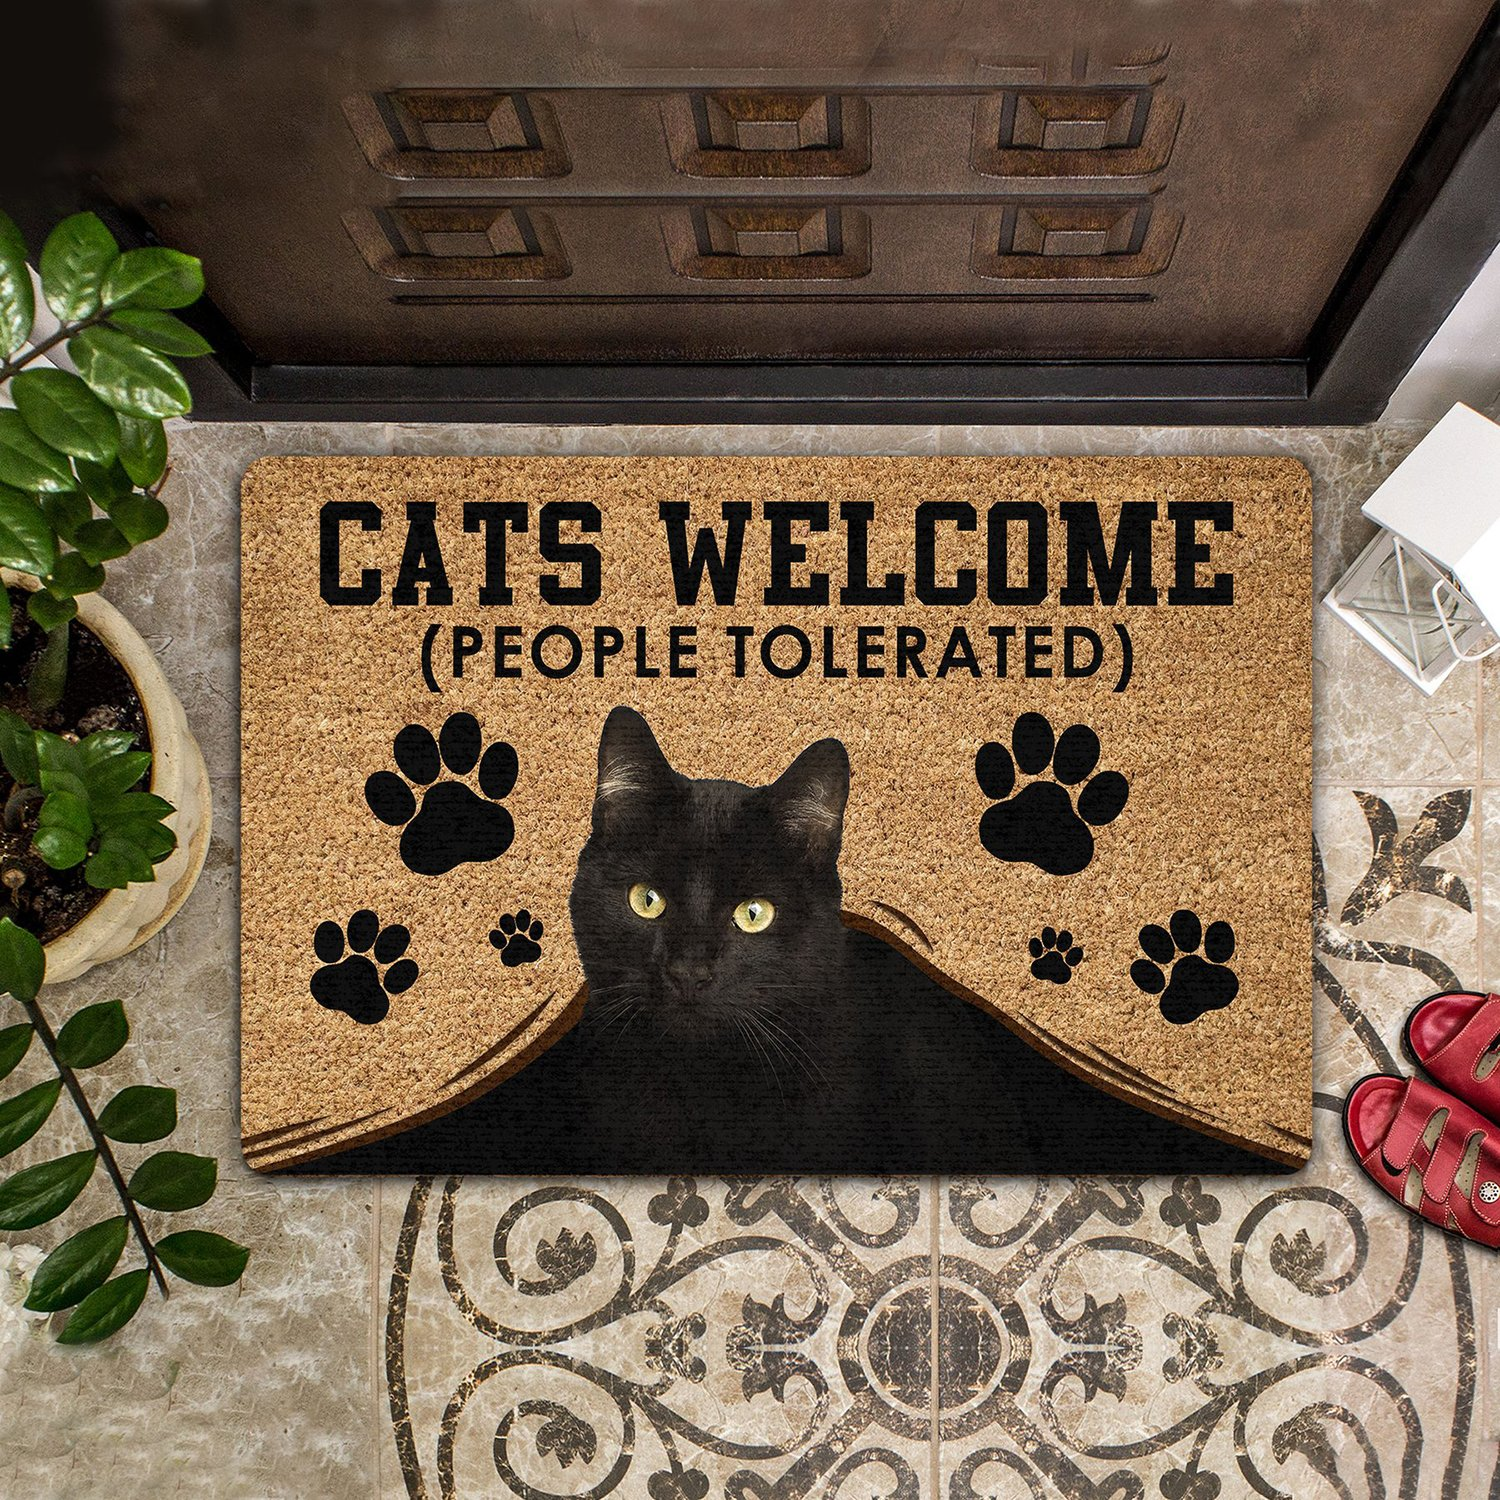 CATS WELCOME (PEOPLE TOLERATED) COIR PATTERN ALL OVER PRINTING DOORMAT